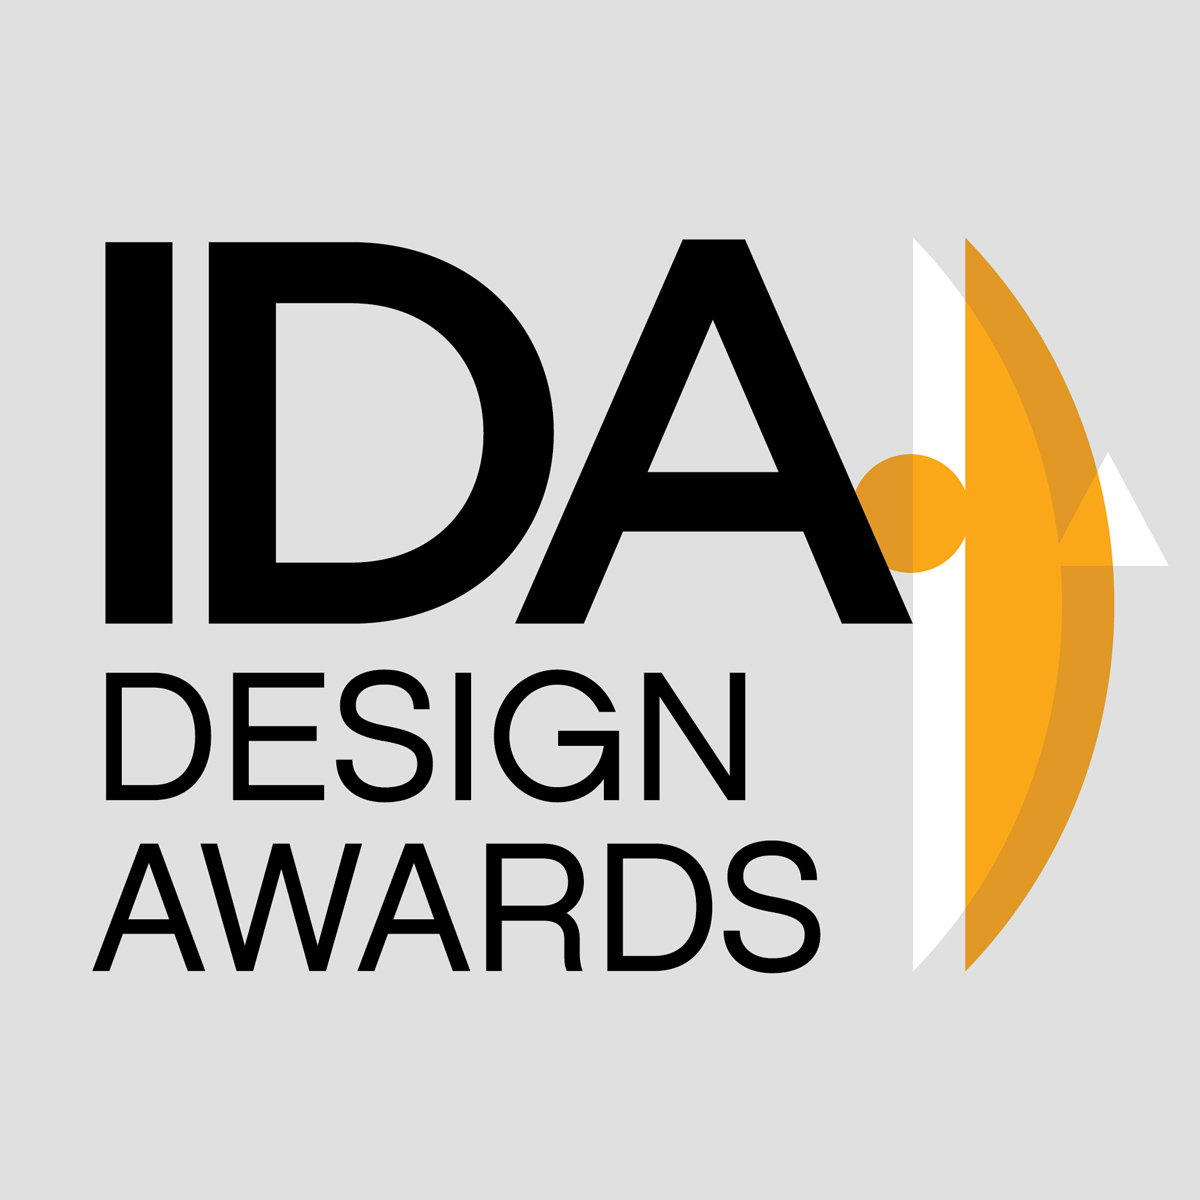 International Design Awards 2020